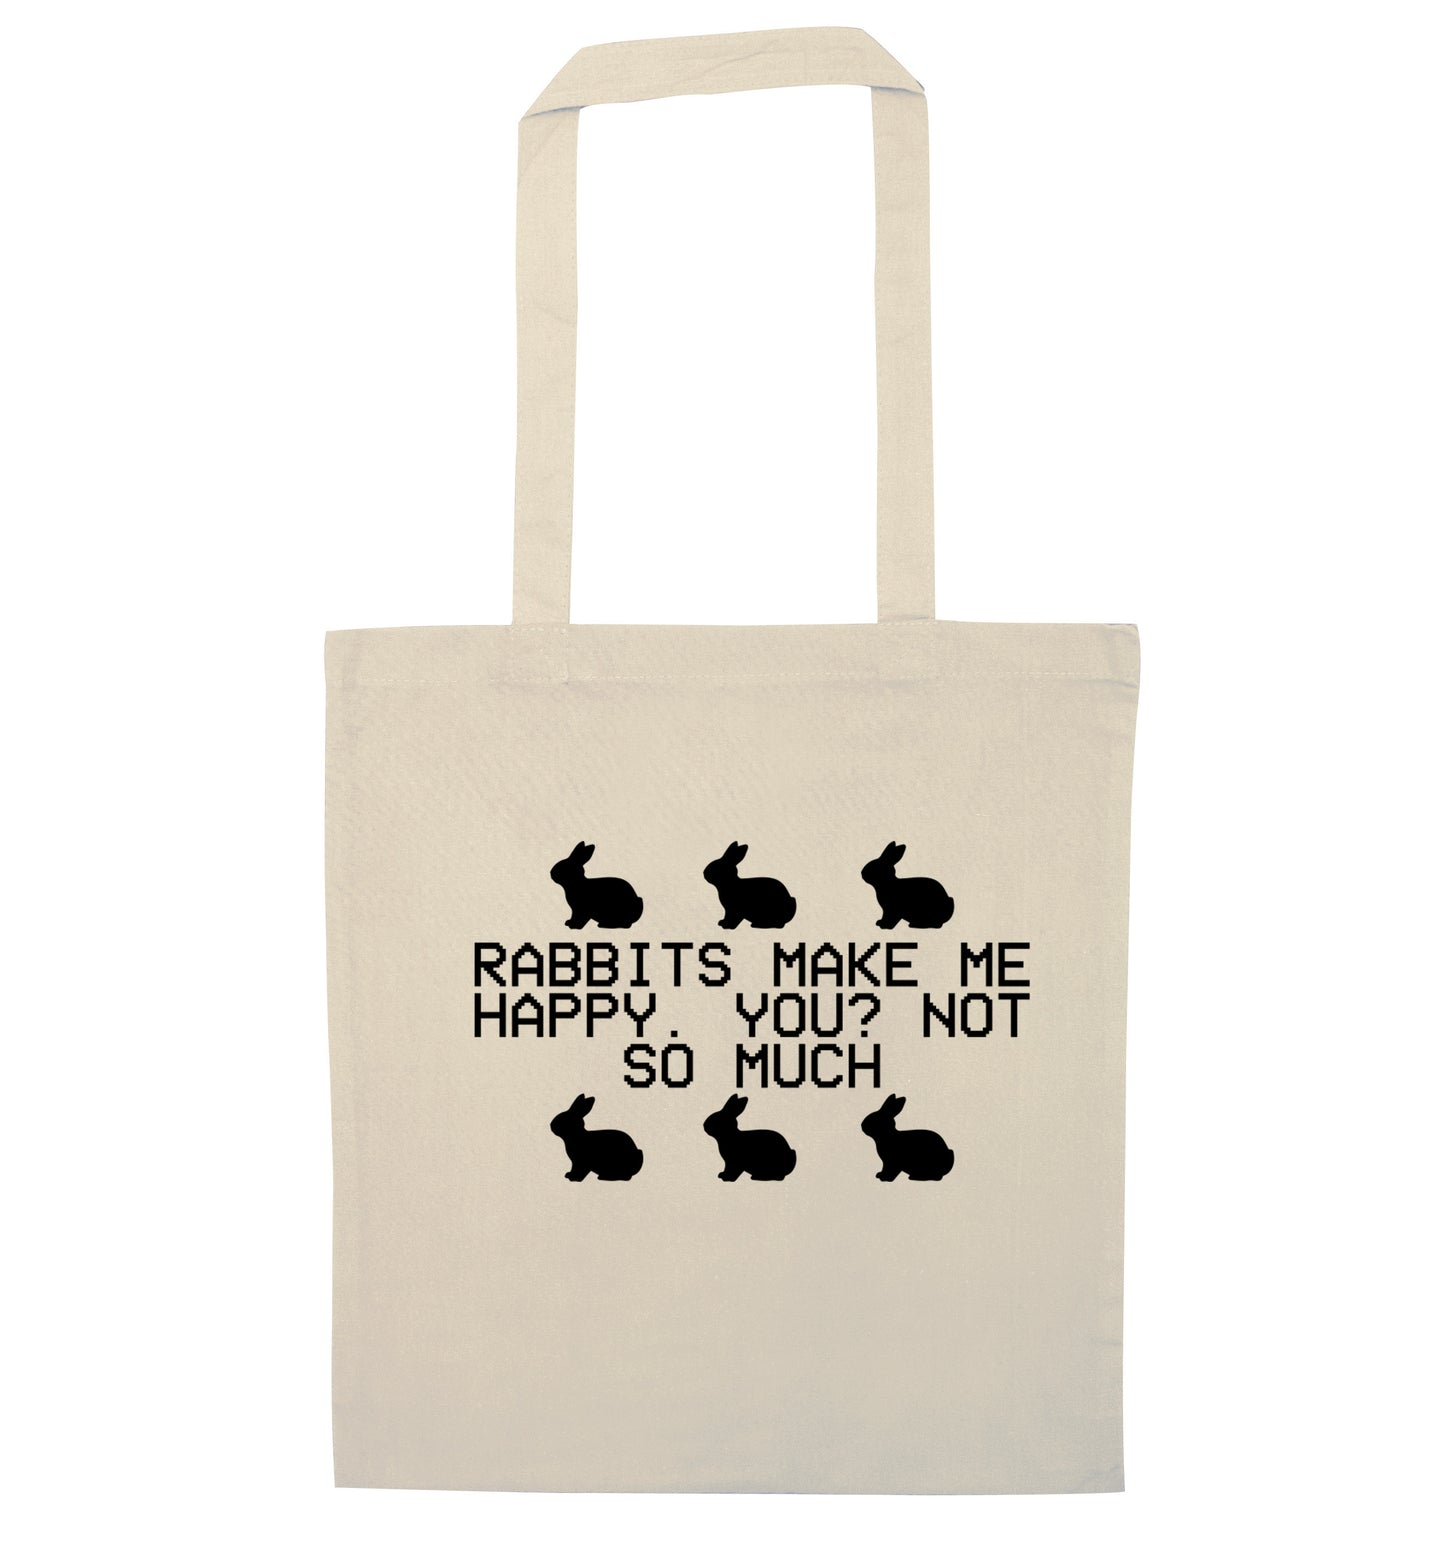 Rabbits make me happy, you not so much natural tote bag